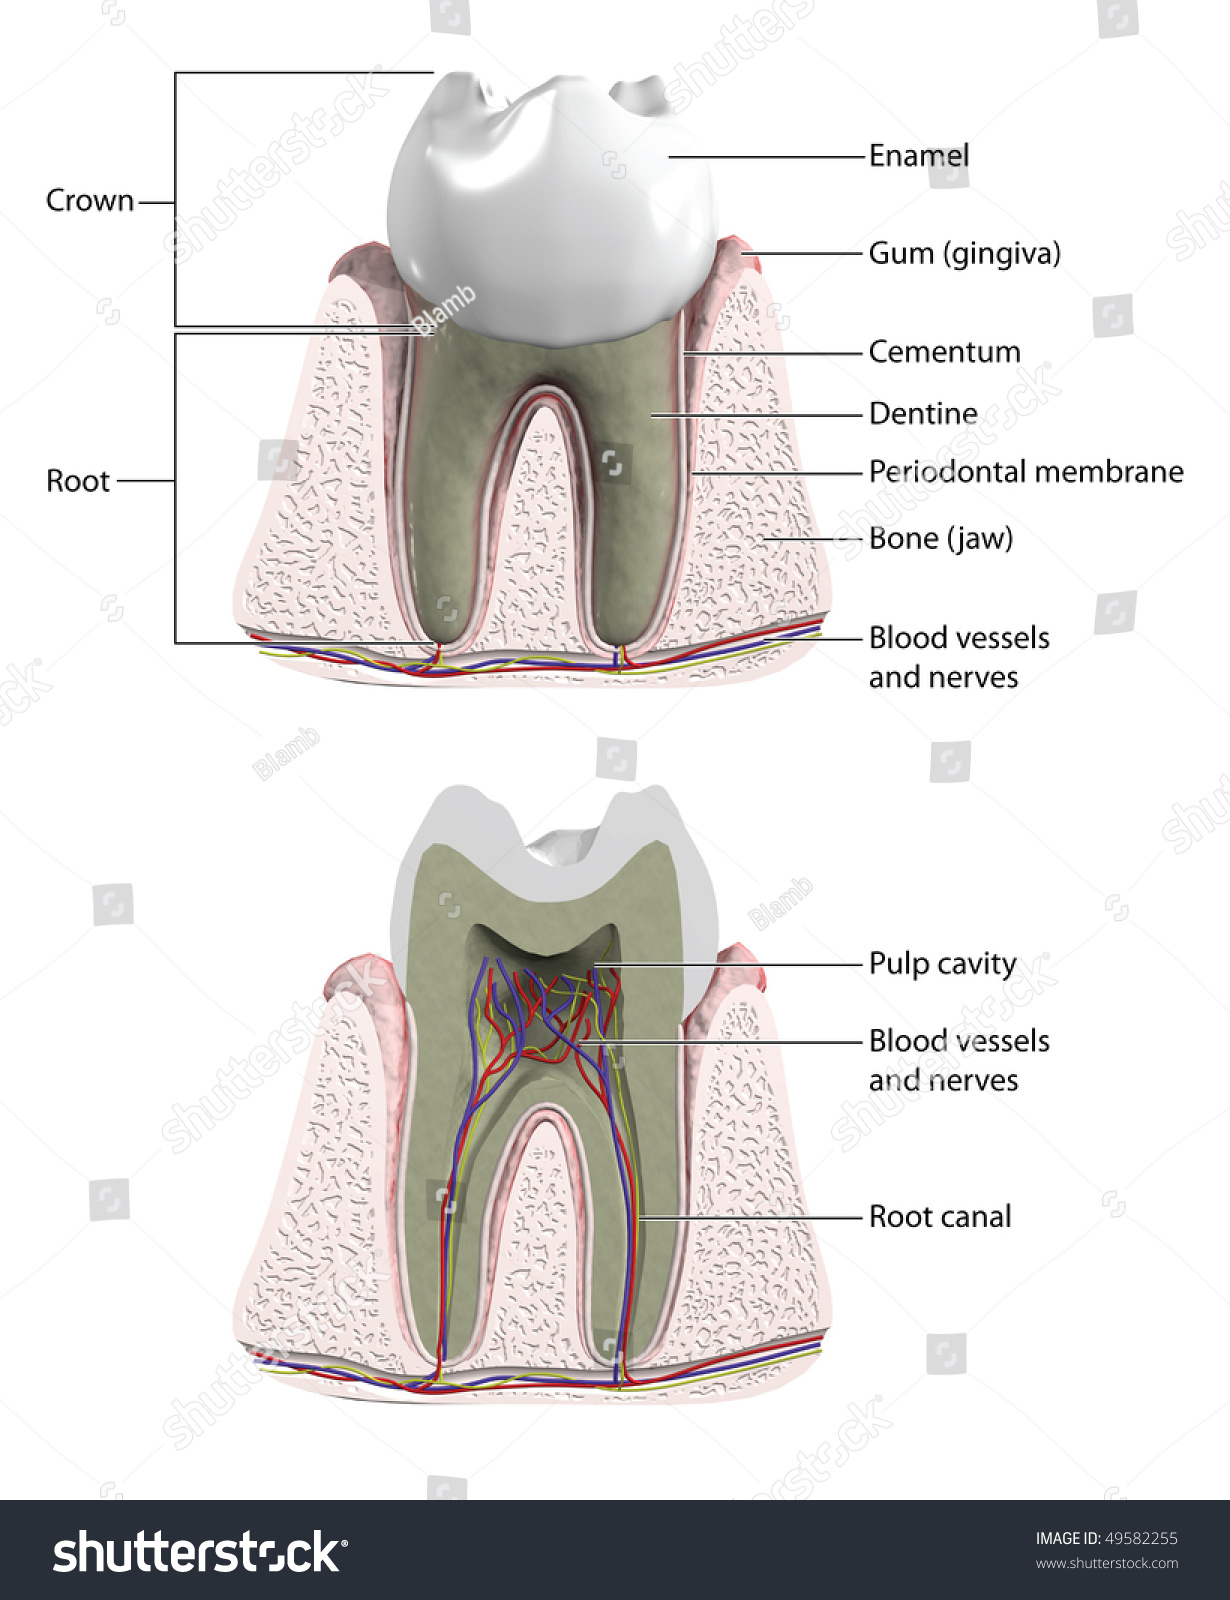 Molar Tooth With Cross Section To Show Blood Supply And